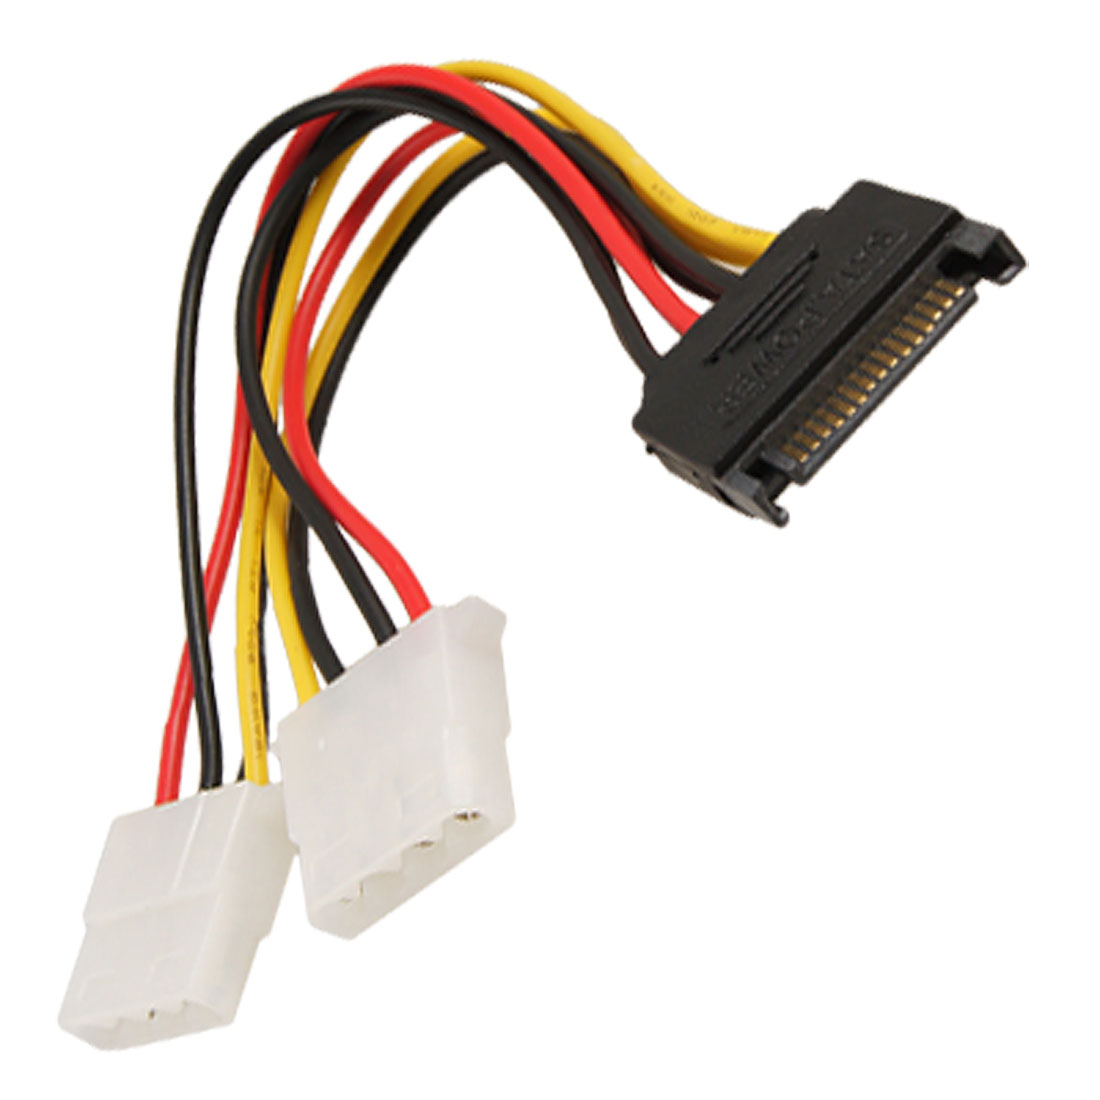 SATA 15 Pin Male to Female 4 Pin IDE Adapter Power Cable Cord